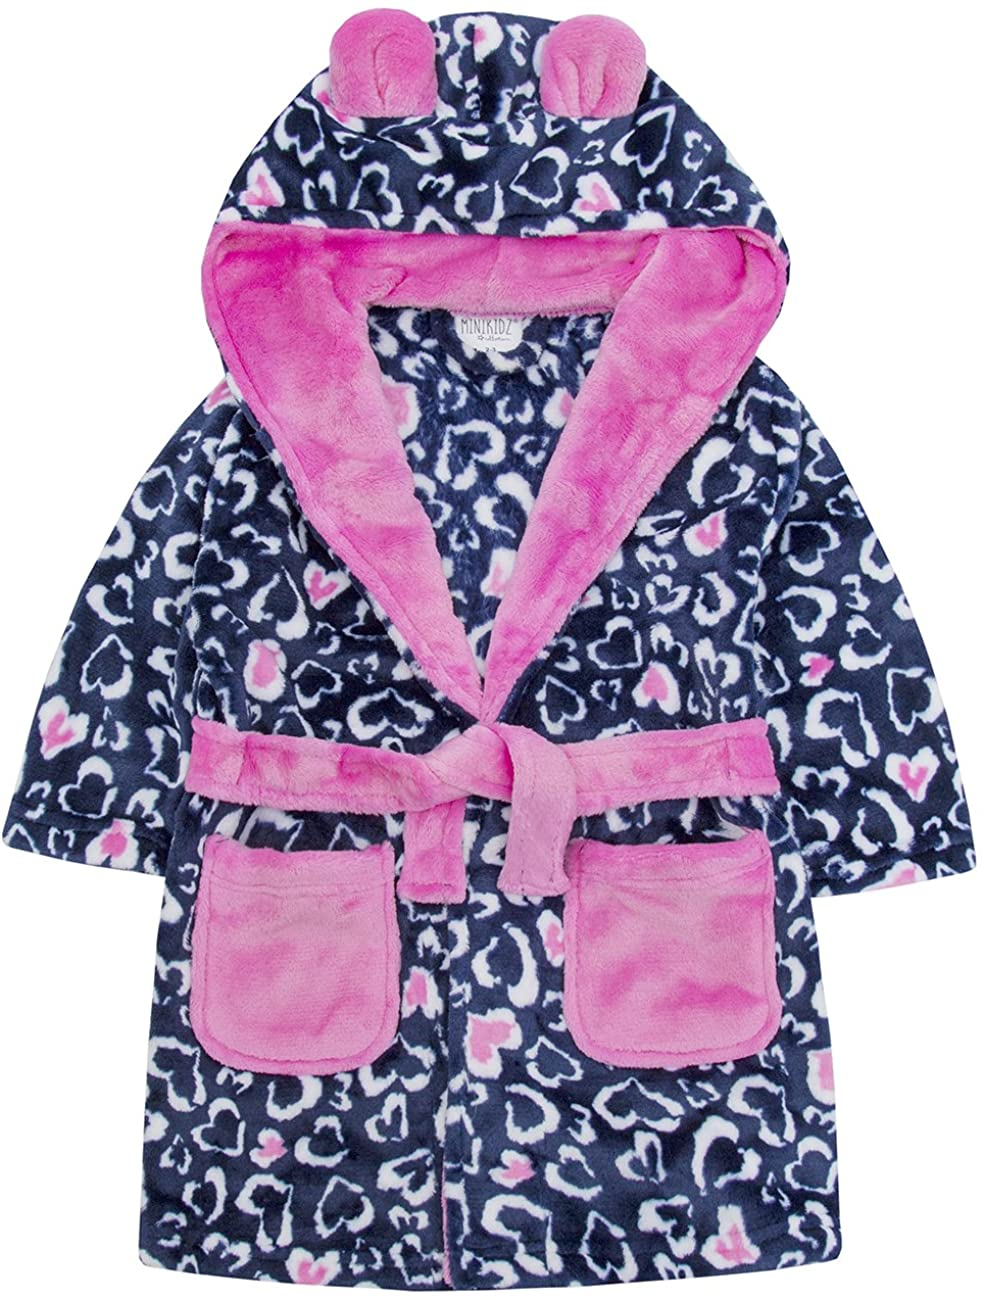 MiniKidz Infant Girls Leopard Print Dressing Gown - Flannel Fleece Hooded Robe Blue